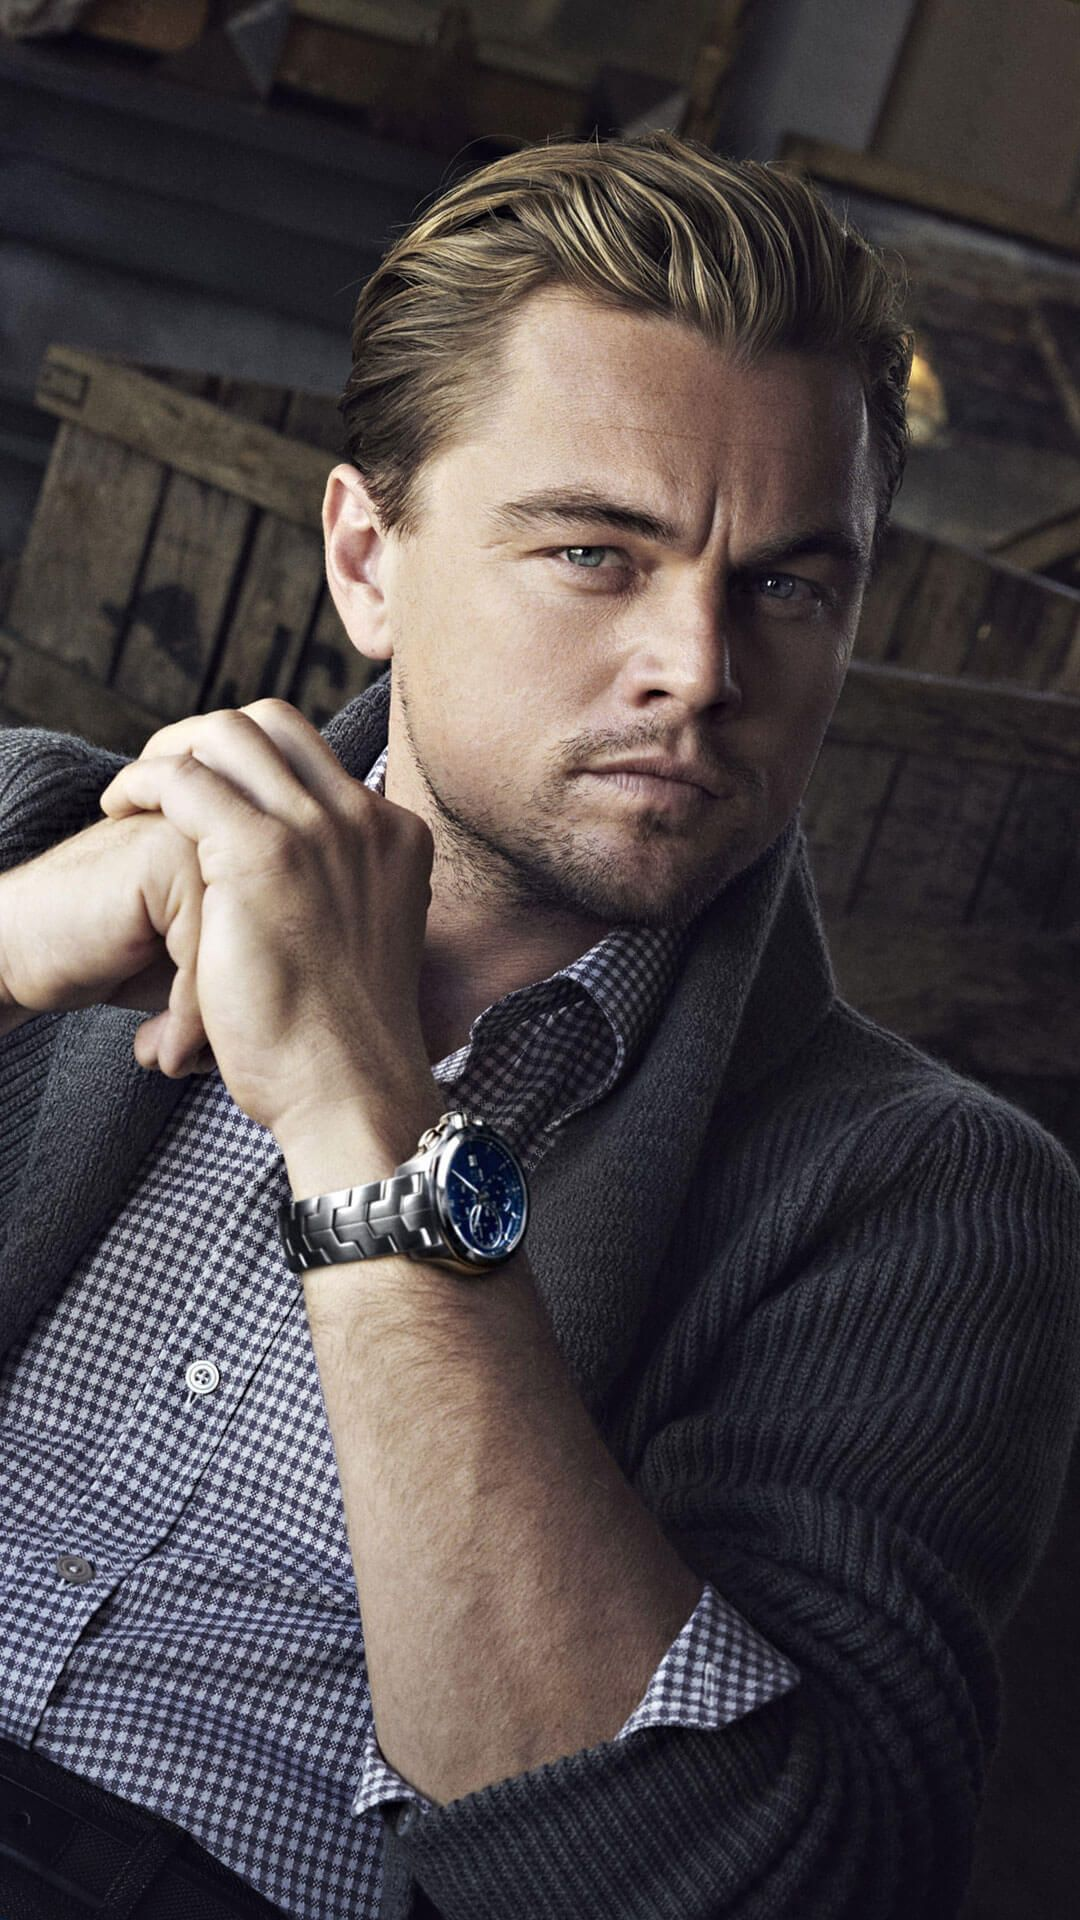 leonardo dicaprio wallpaper for iphone 6 hd | actors | pinterest